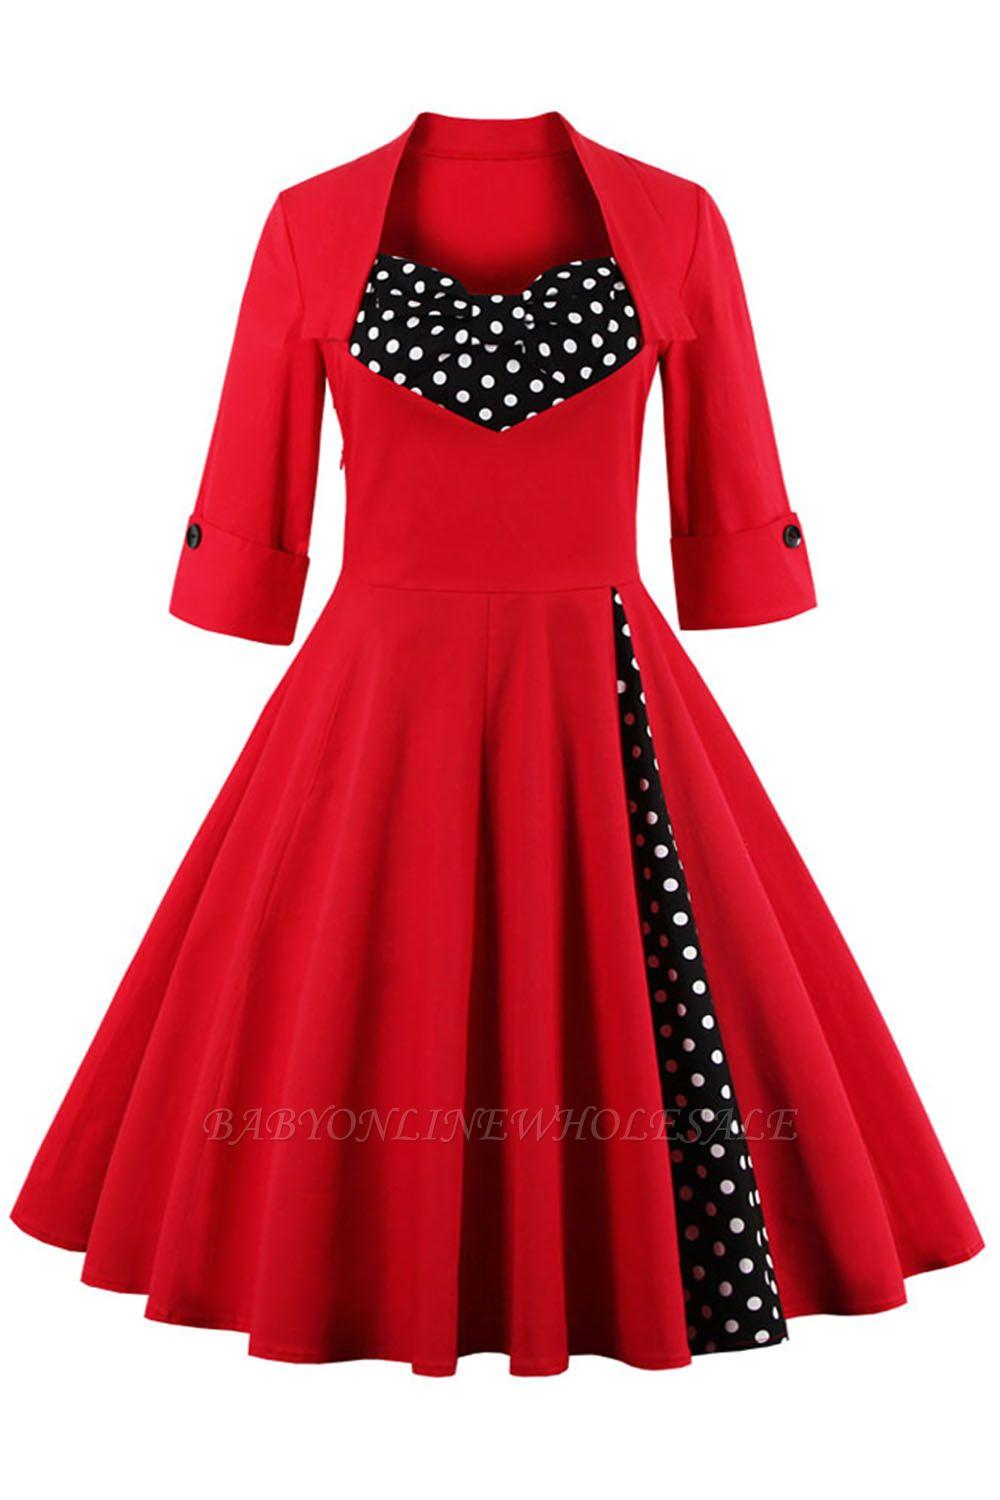 1/2 Sleeve Bow Tie Two Toned Vintage Dress with Pleats clearance sale & free shipping